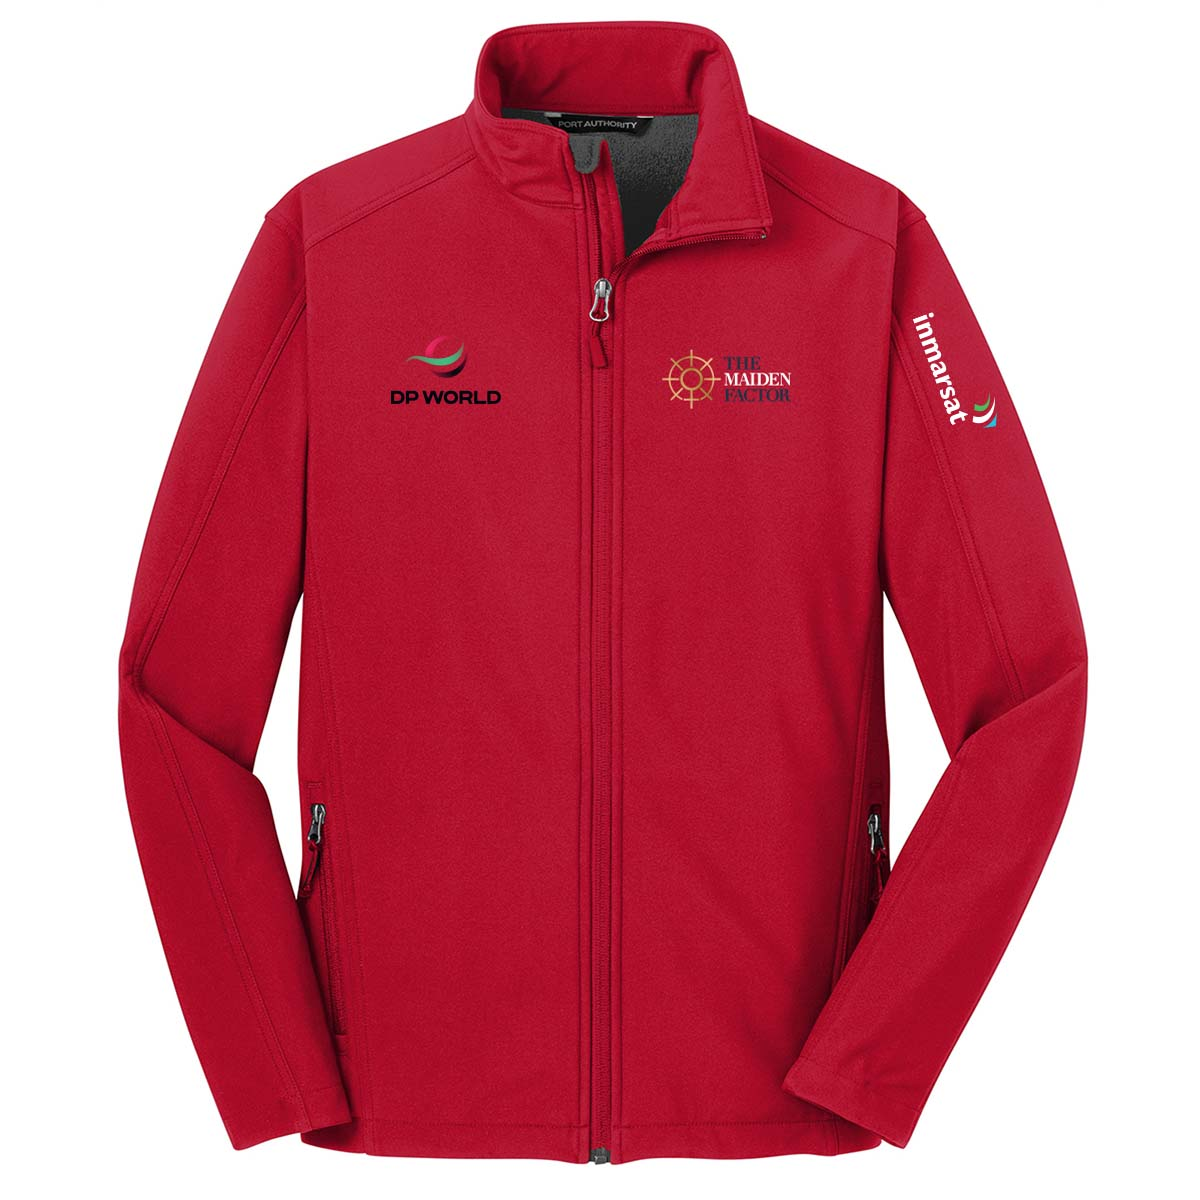 MAIDEN FACTOR M'S SOFT SHELL JACKET